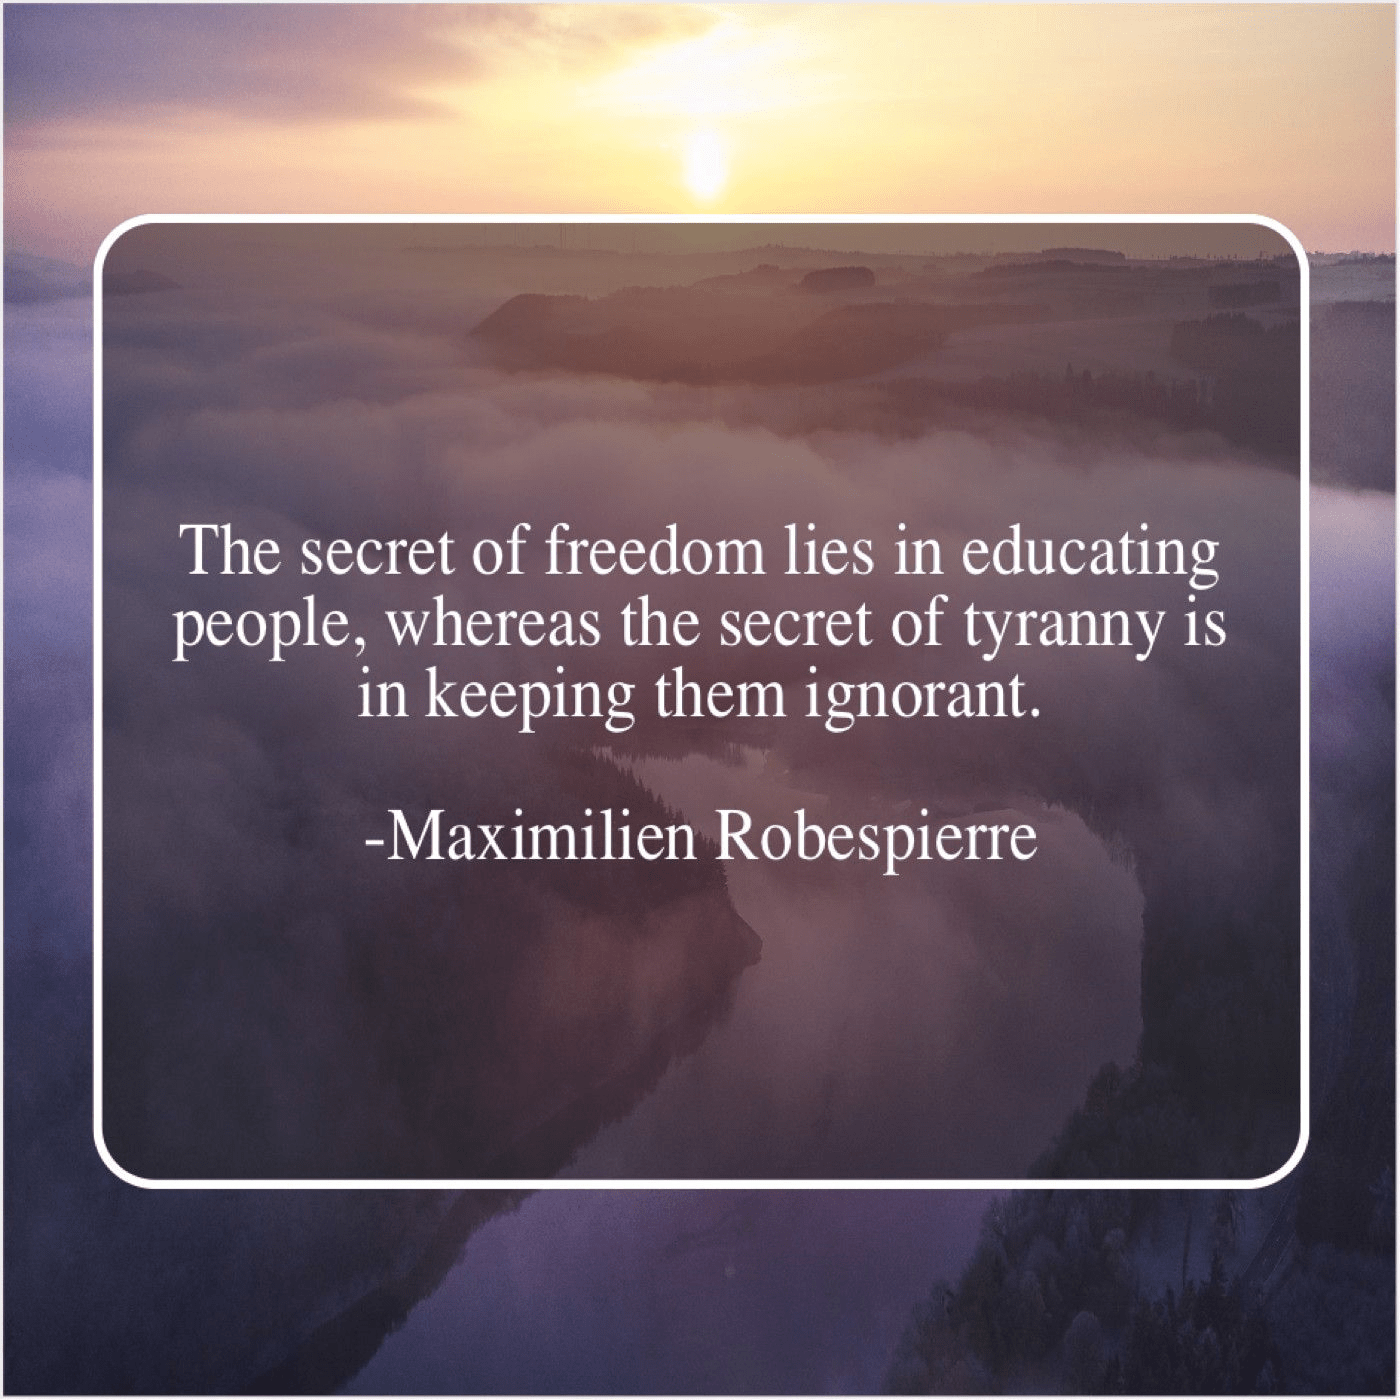 """The secret of freedom lies in educating people, whereas the secret of tyranny is keeping them ignorant"" – Maximilien Robespierre [1400×1400]"